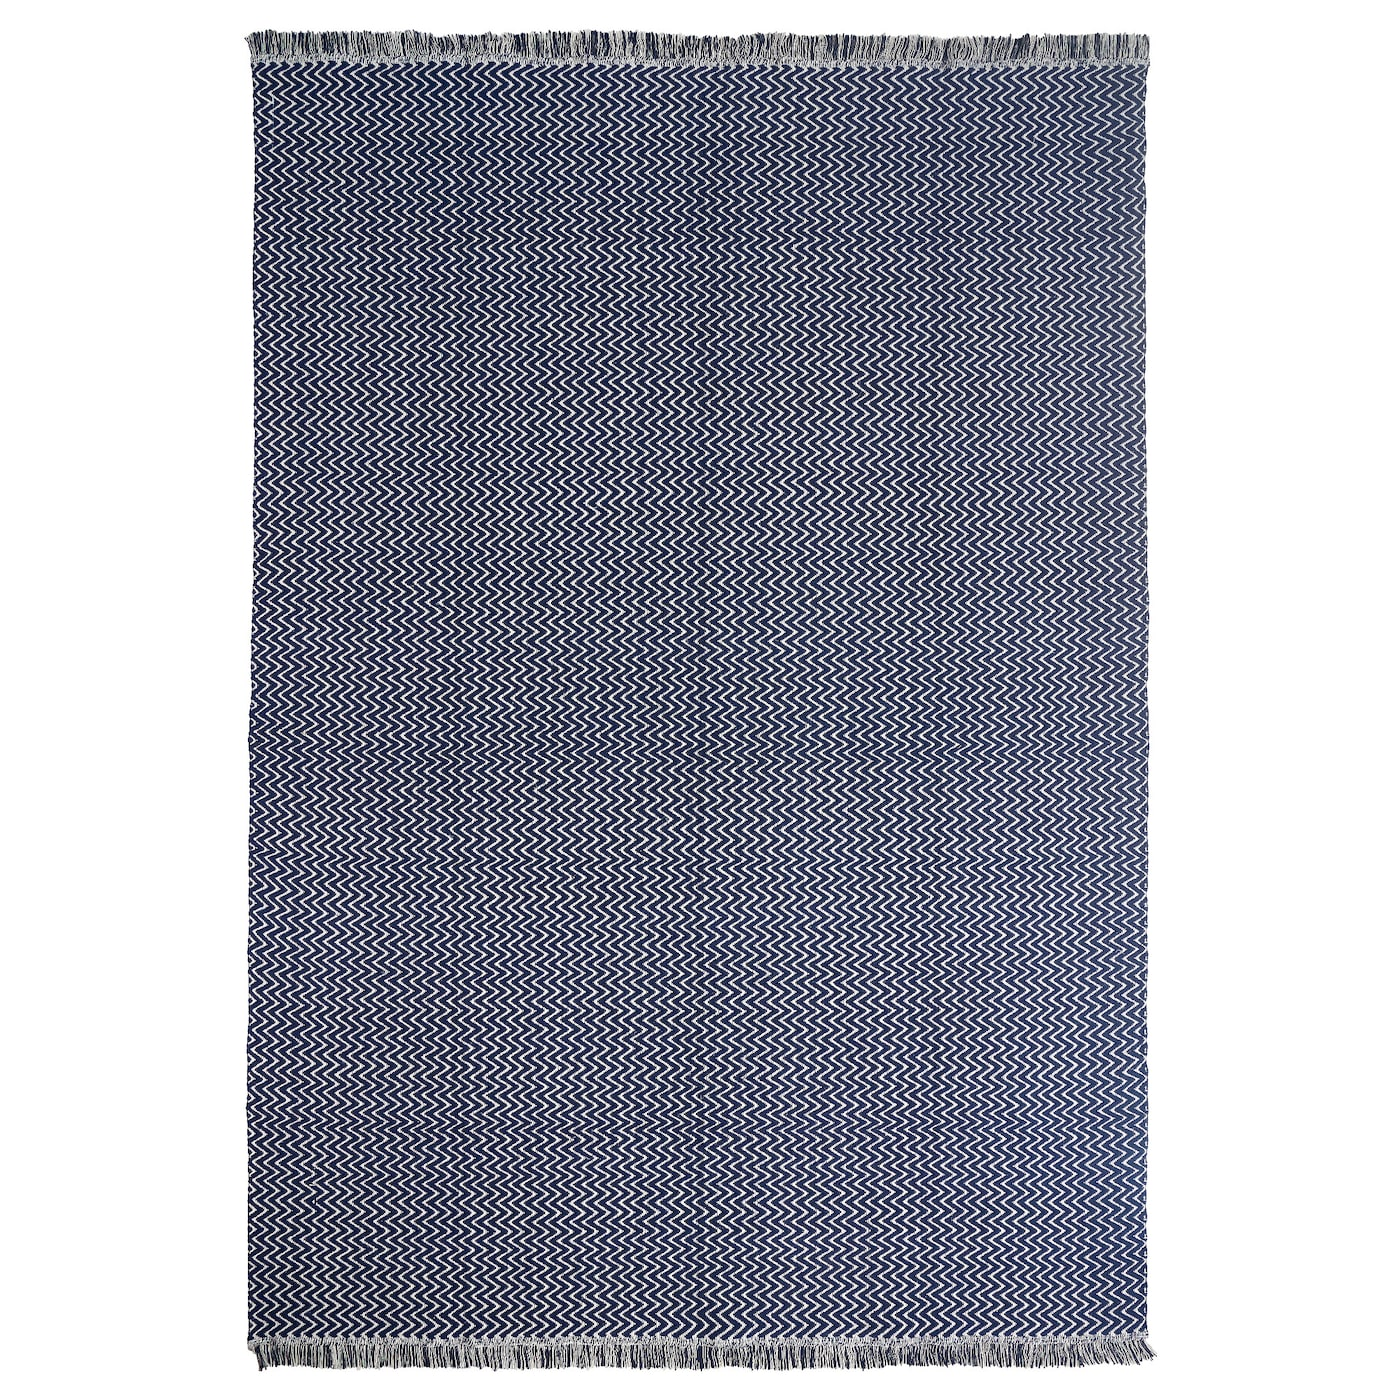 IKEA FASTERHOLT rug, flatwoven Handwoven by skilled craftspeople, and therefore unique.